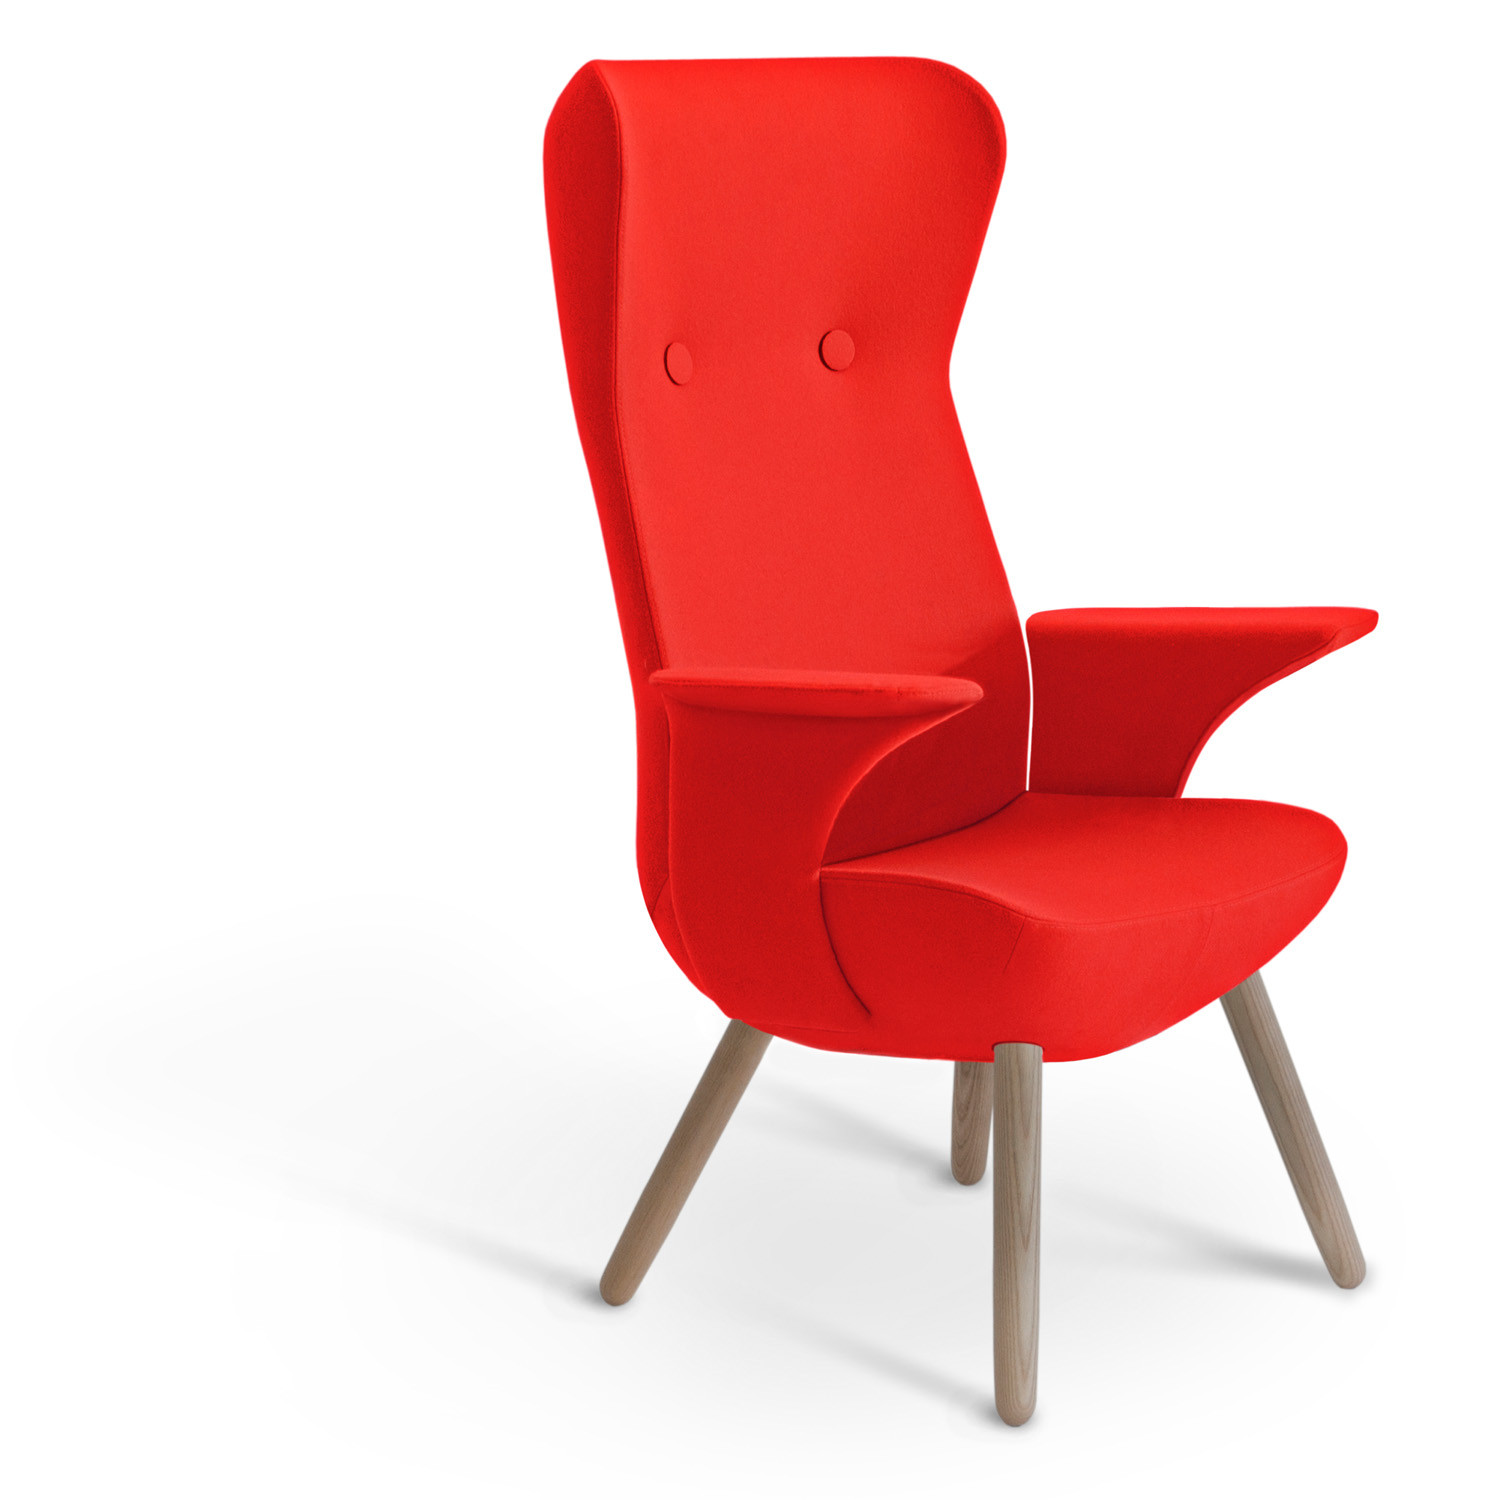 high backed chairs for the elderly shower chair cvs hm82 armchairs back apres furniture